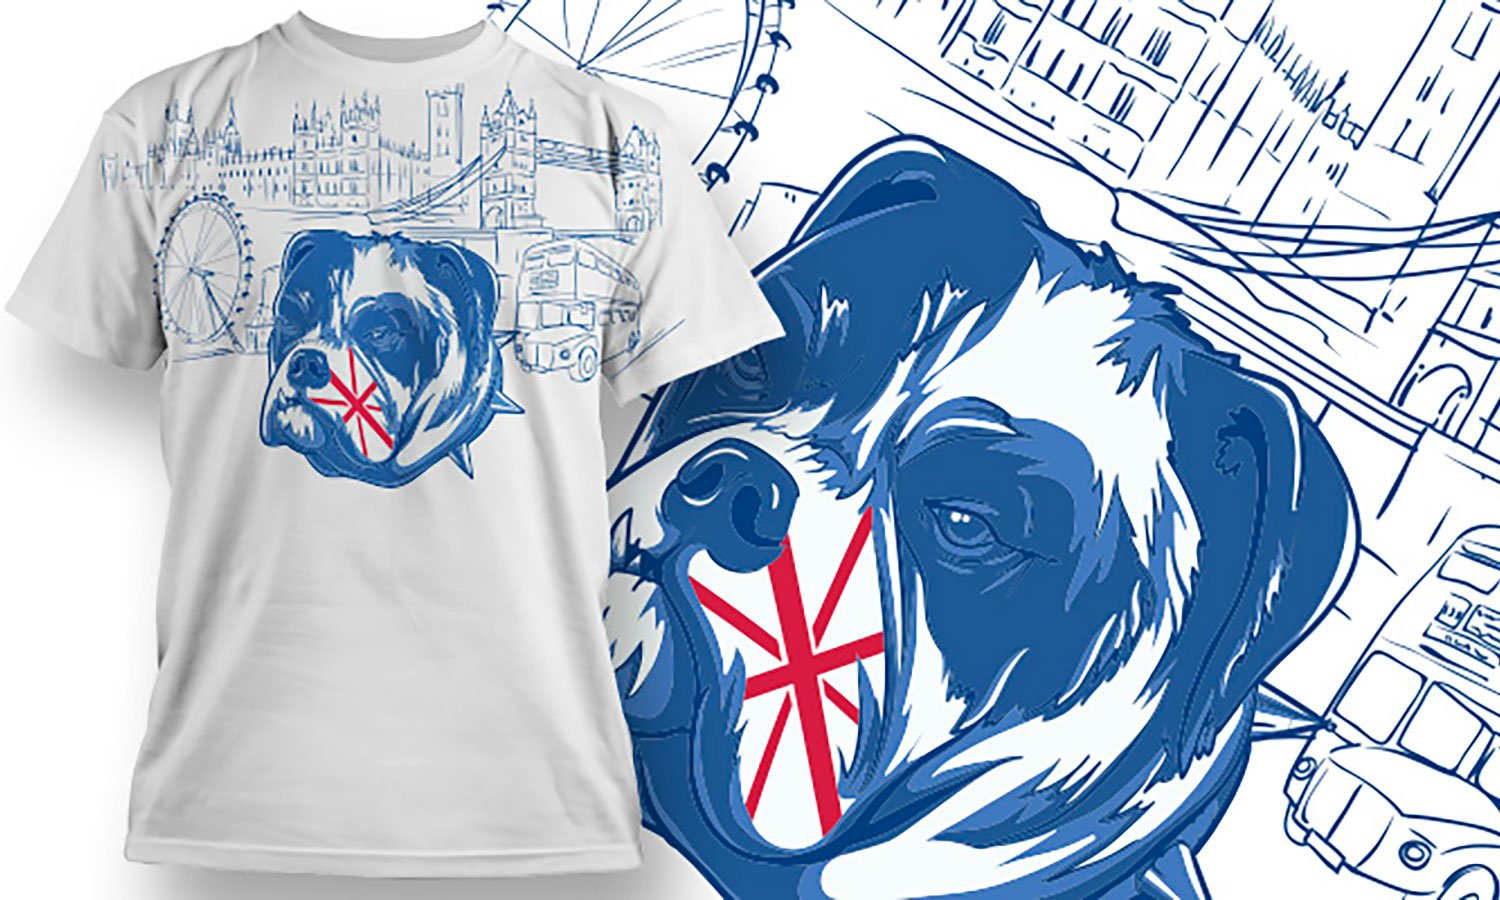 English Dog - Printed T-Shirt for Men, Women and Kids - TS083